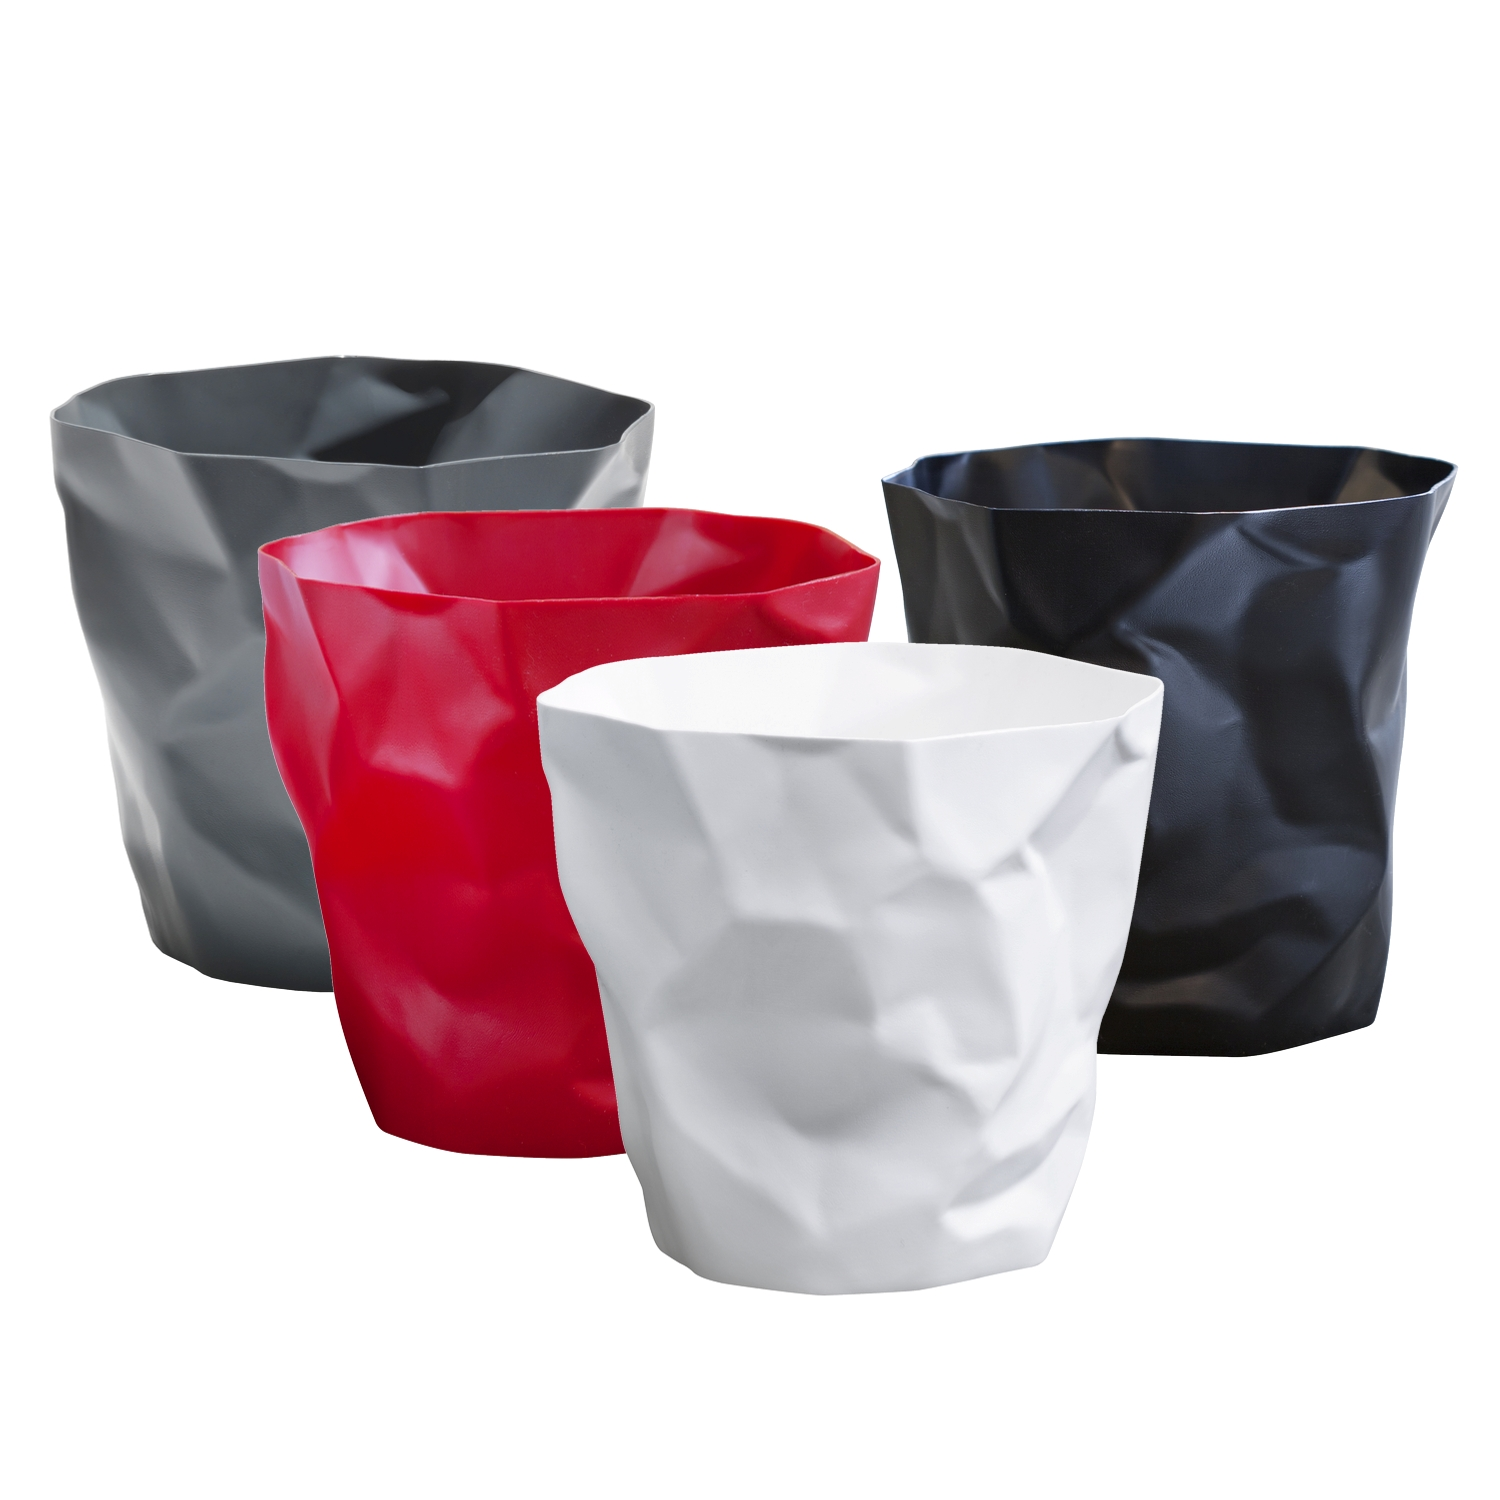 Essey Papierkorb Mini Bin Bin